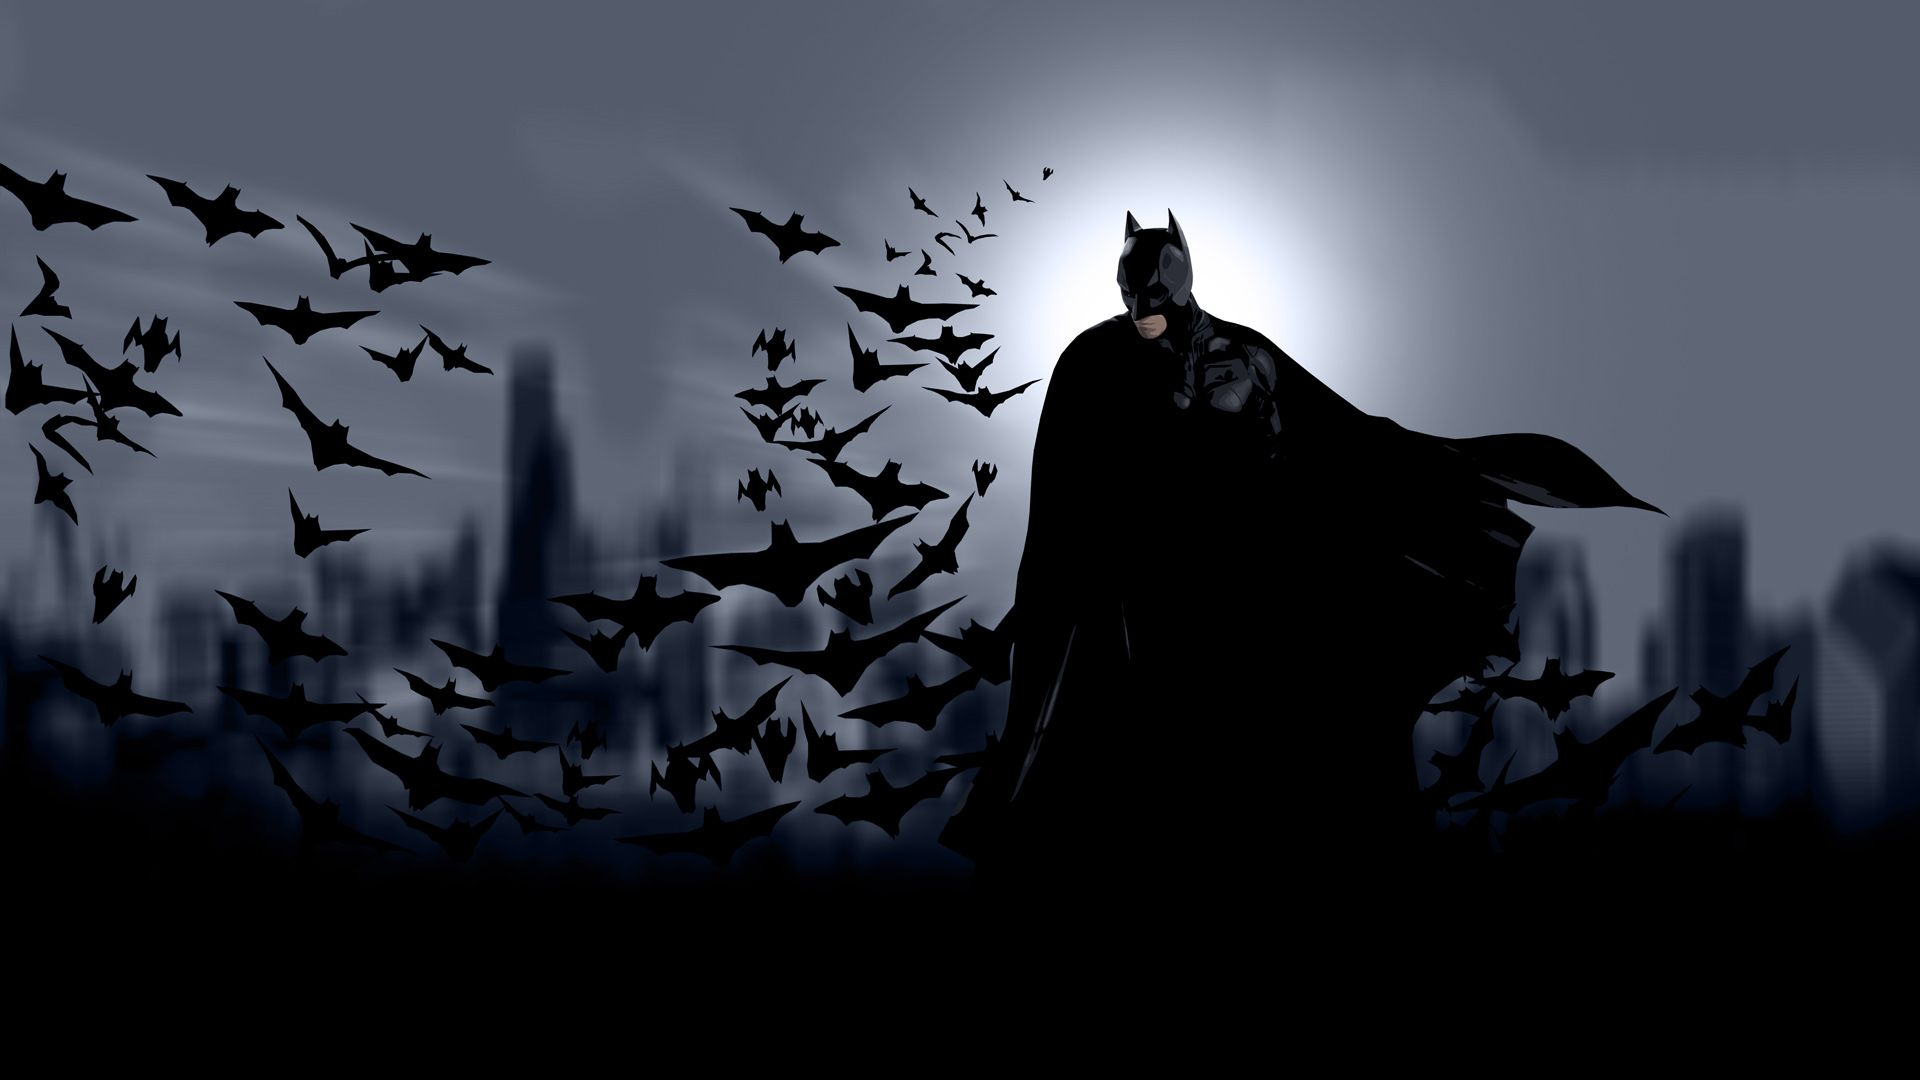 batman background images